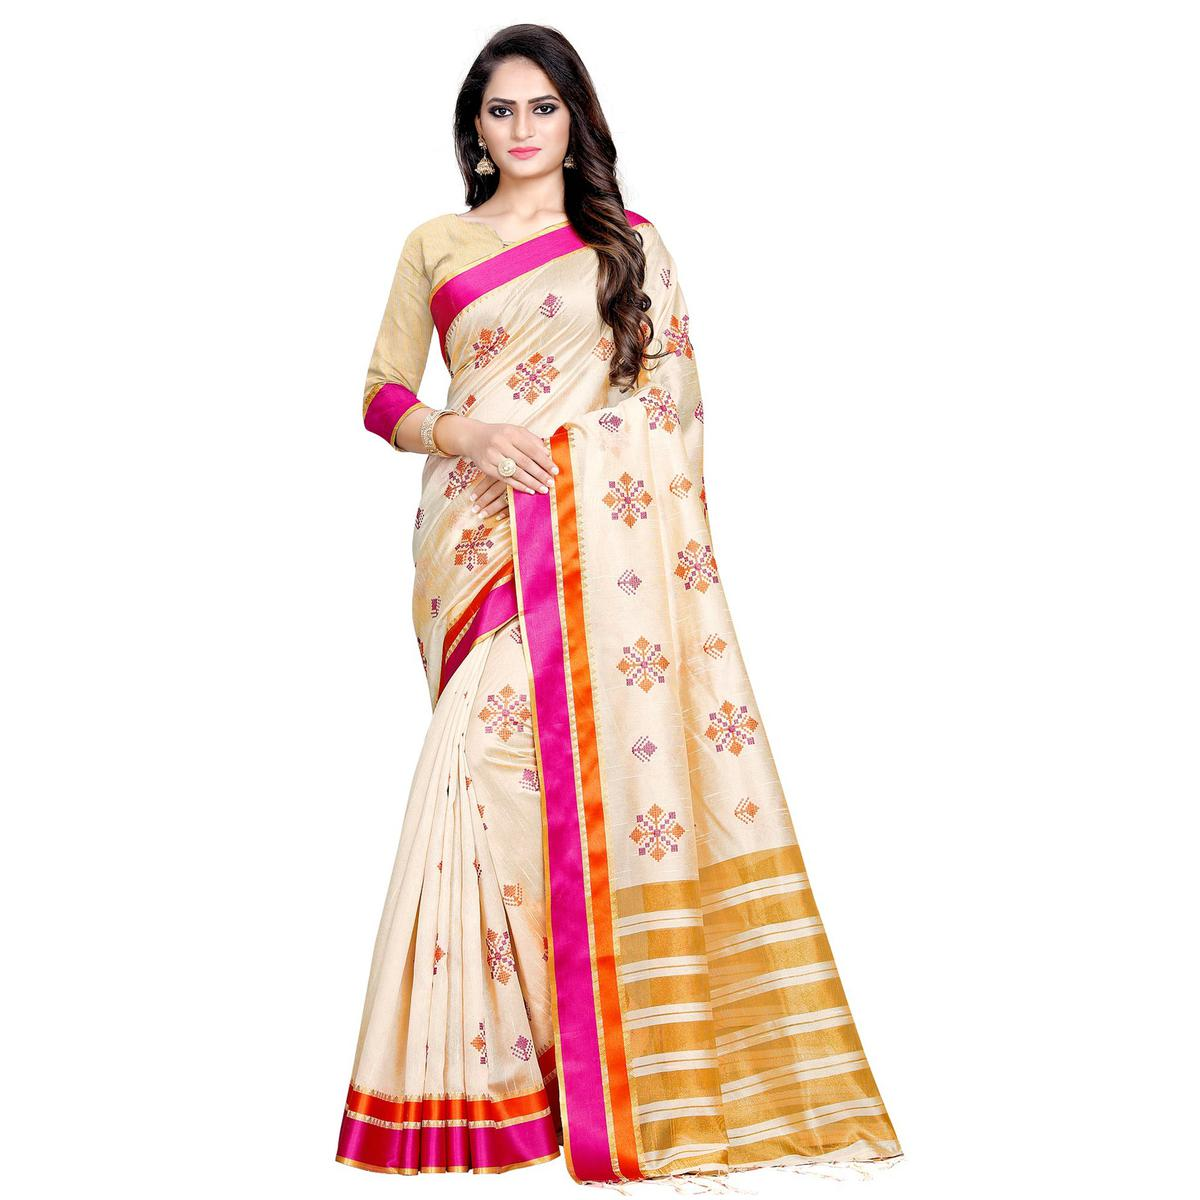 Capricious Cream-Pink Colored Casual Printed Cotton Silk Saree